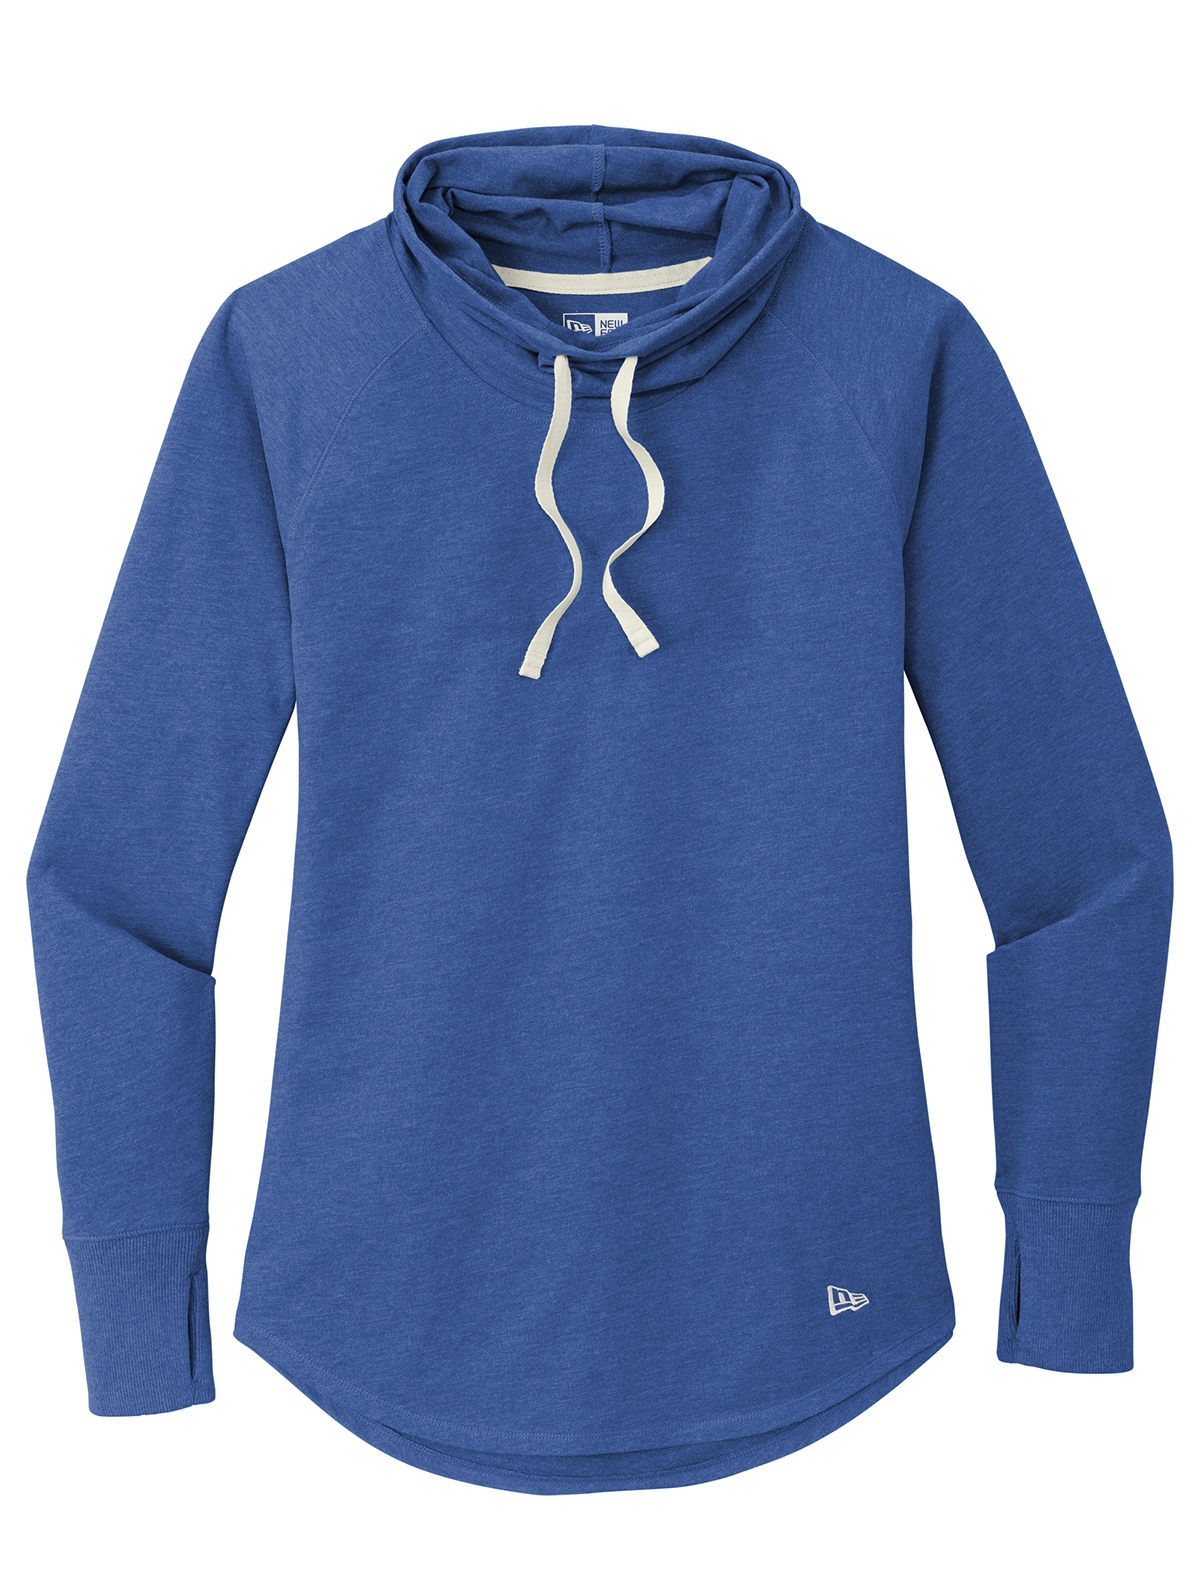 New Era Ladies Sueded Cotton Blend Cowl Tee from NYFifth